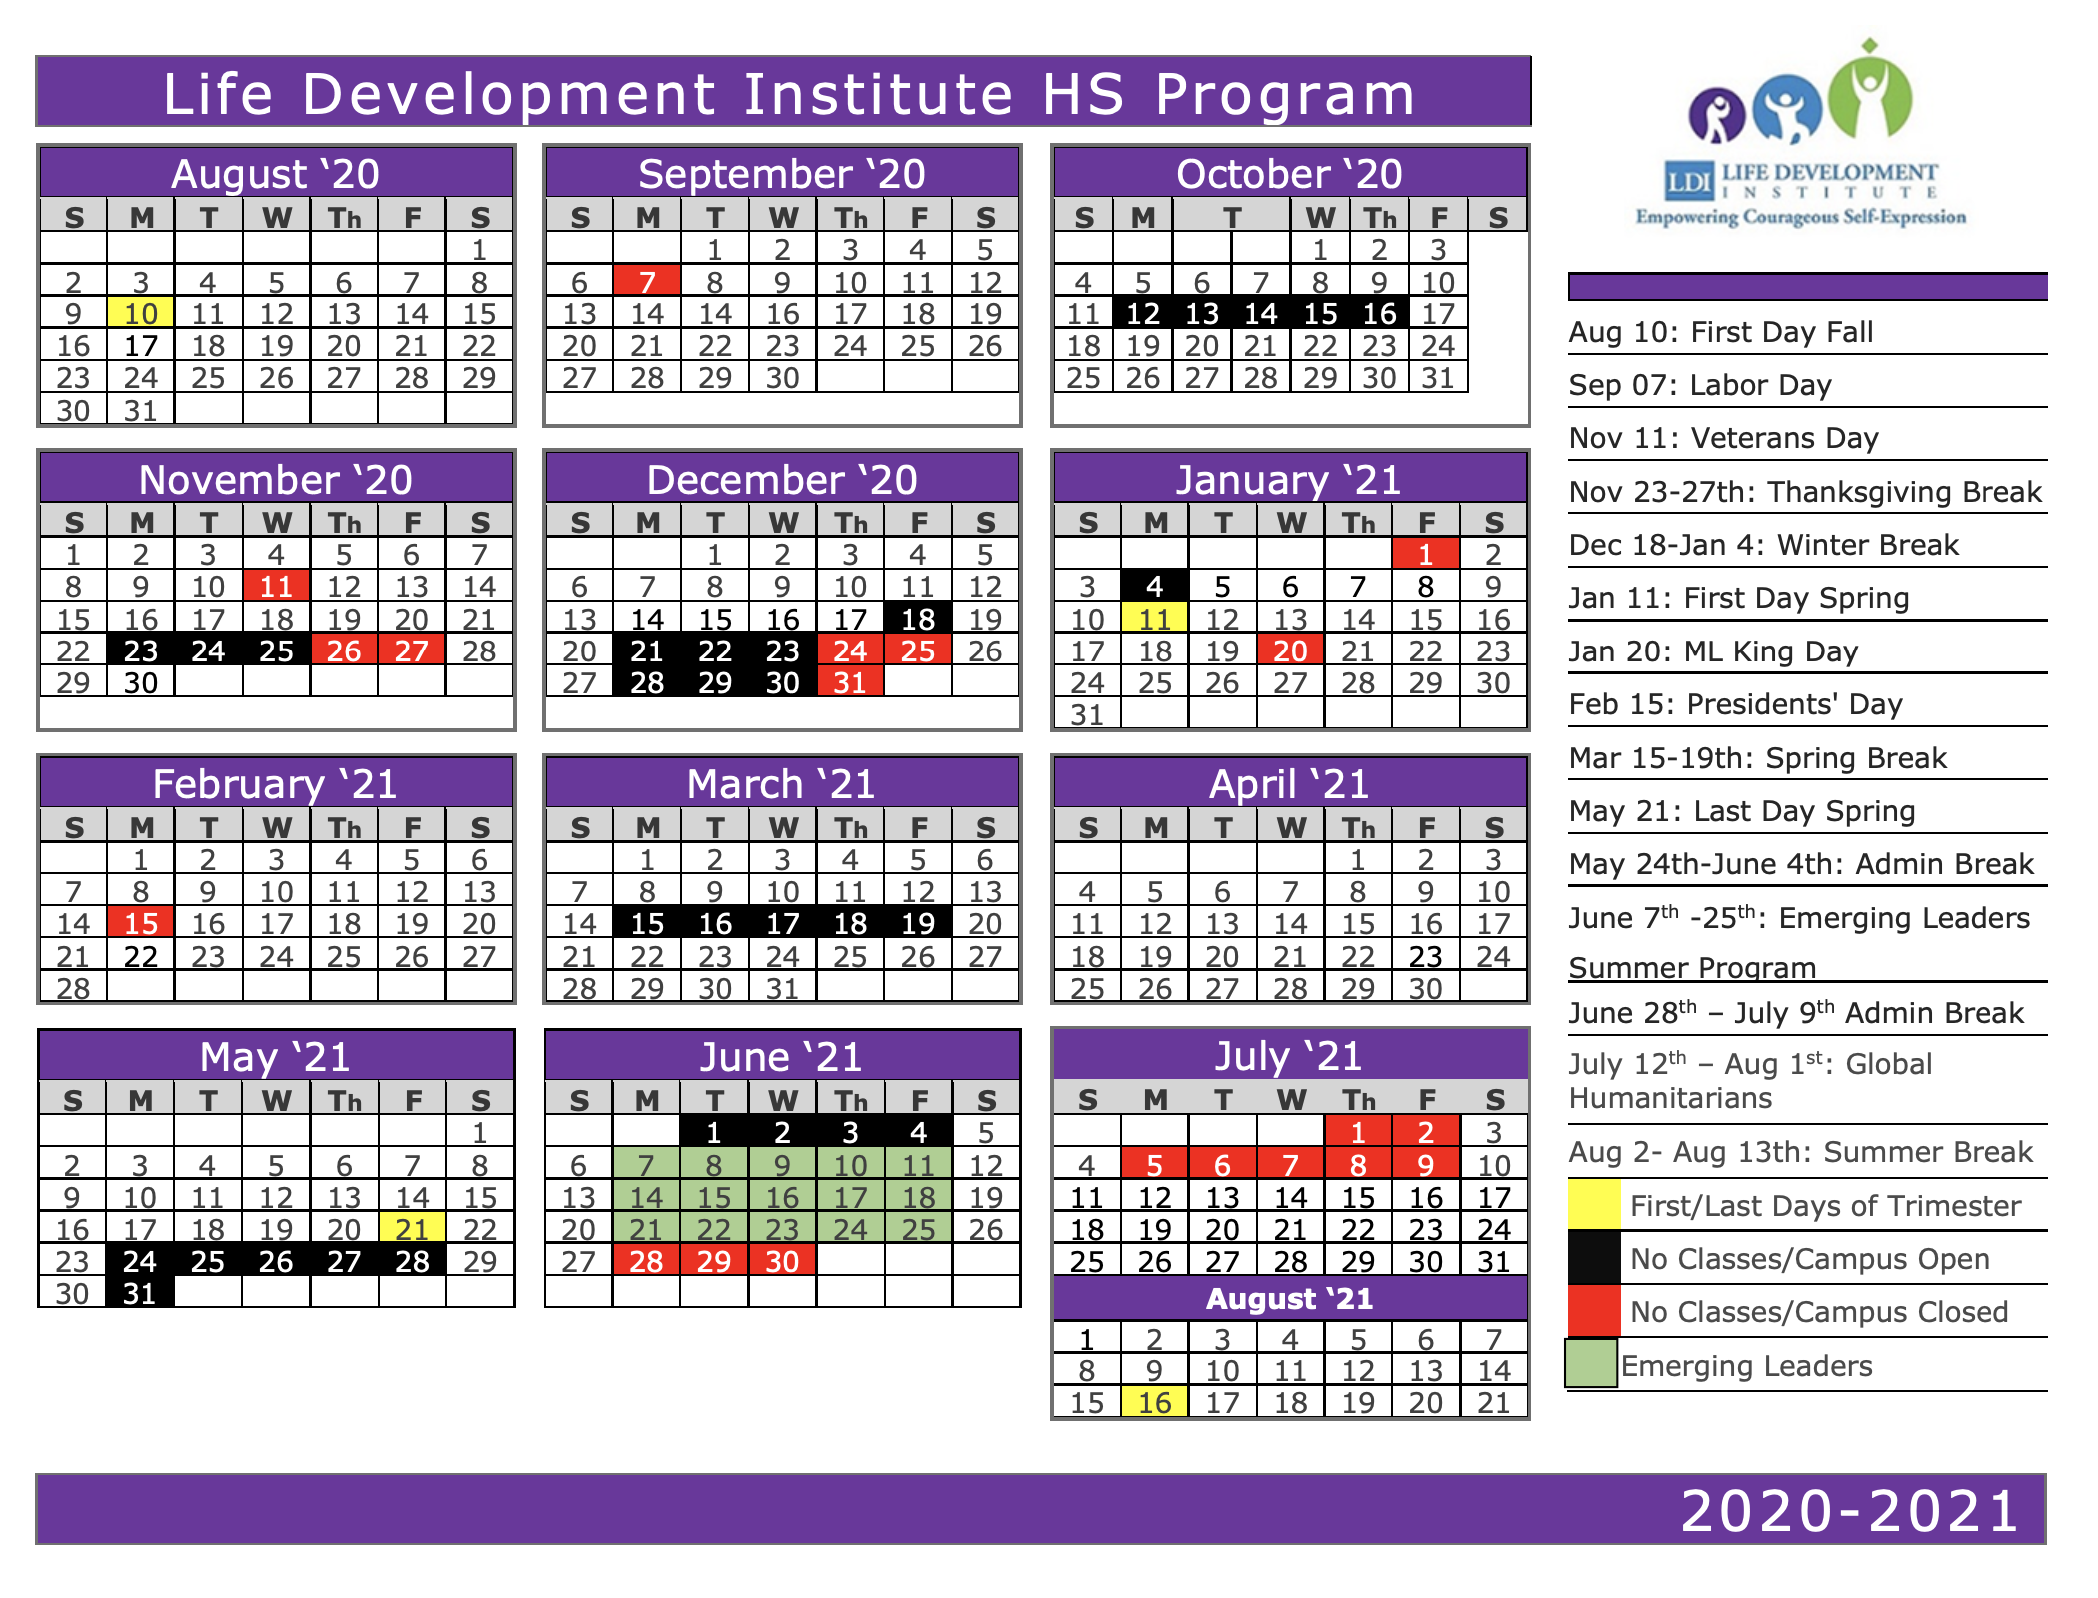 Ccsf Academic Calendar 2022.C S N F A L L 2 0 2 0 C A L E N D A R Zonealarm Results